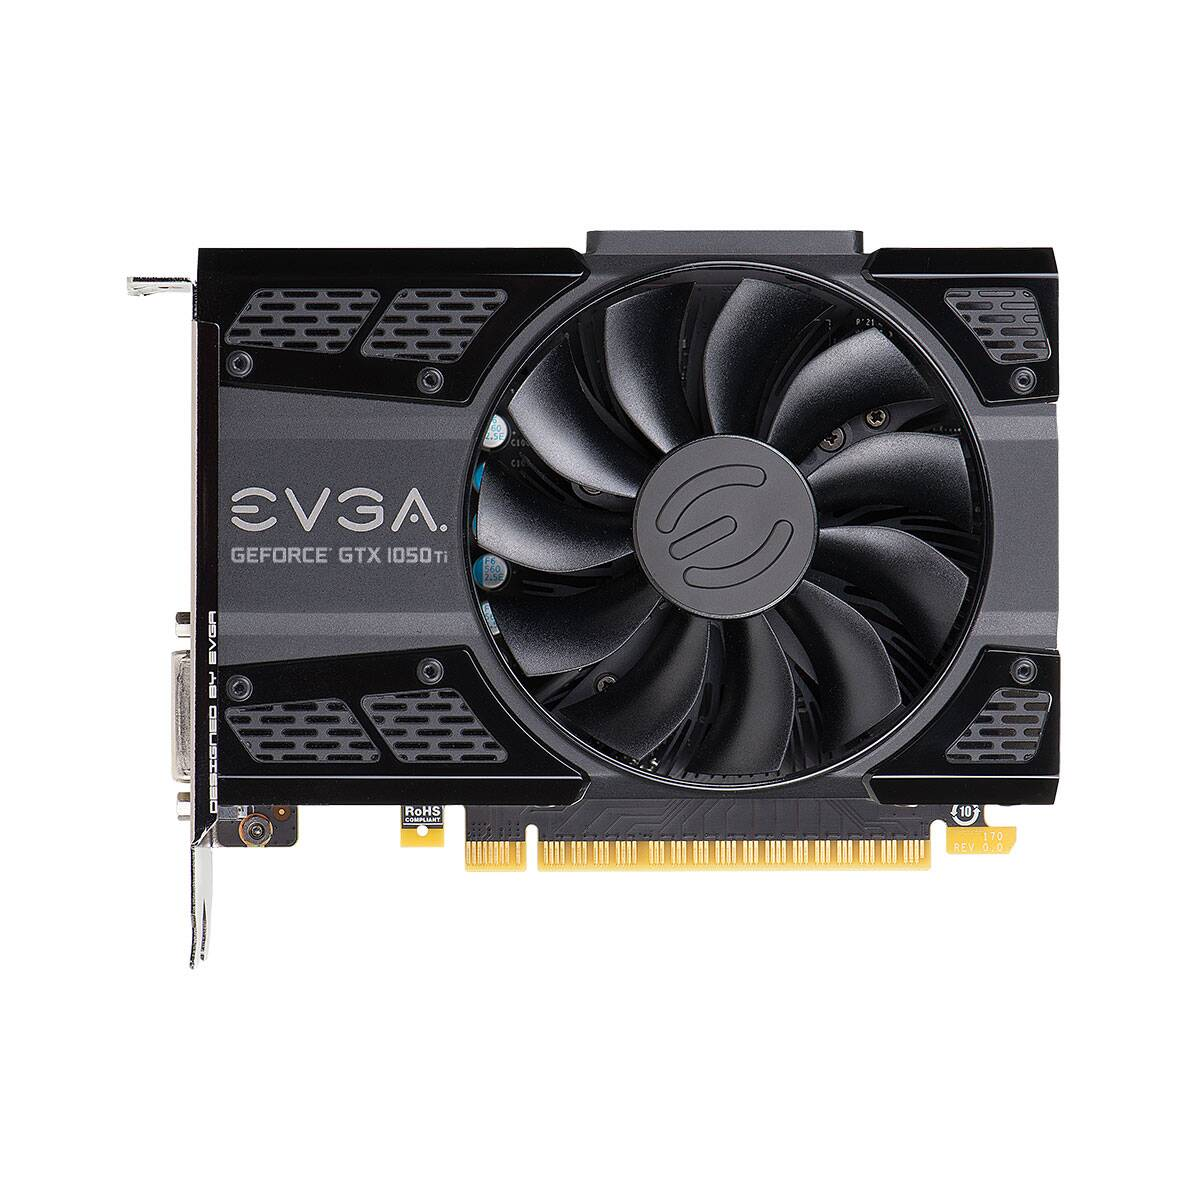 Placa de vídeo EVGA Geforce GTX 1050TI GDDR5 4GB - 04G-P4-6251-KR